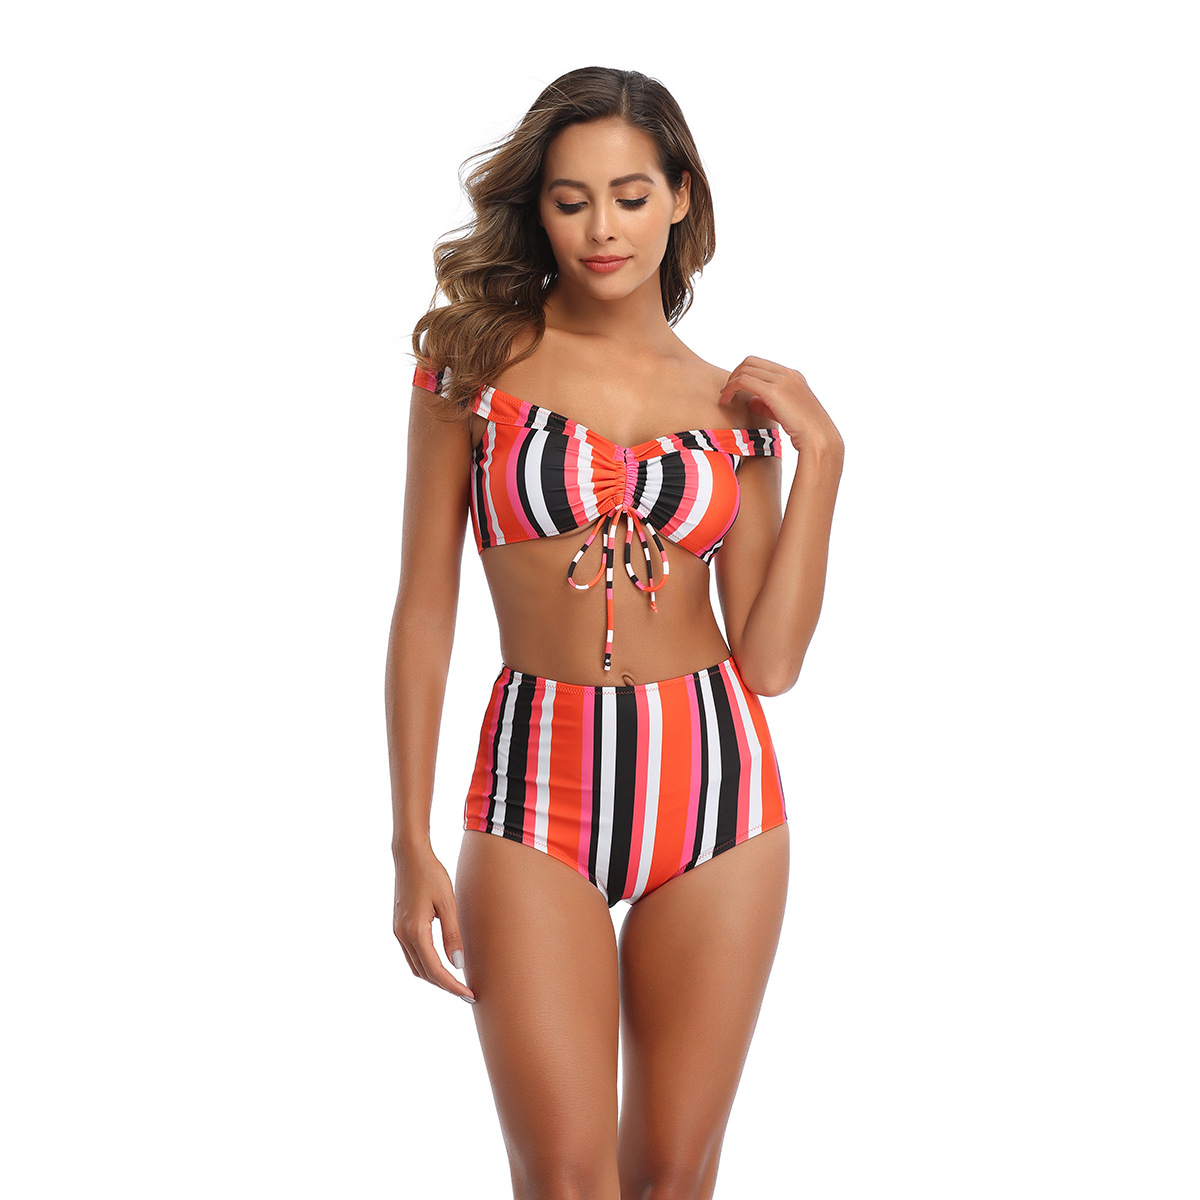 New Sexy Women's Swimsuit Tie Ruffled Shoulder Vertical Striped Printed Swimsuit NHHL198857